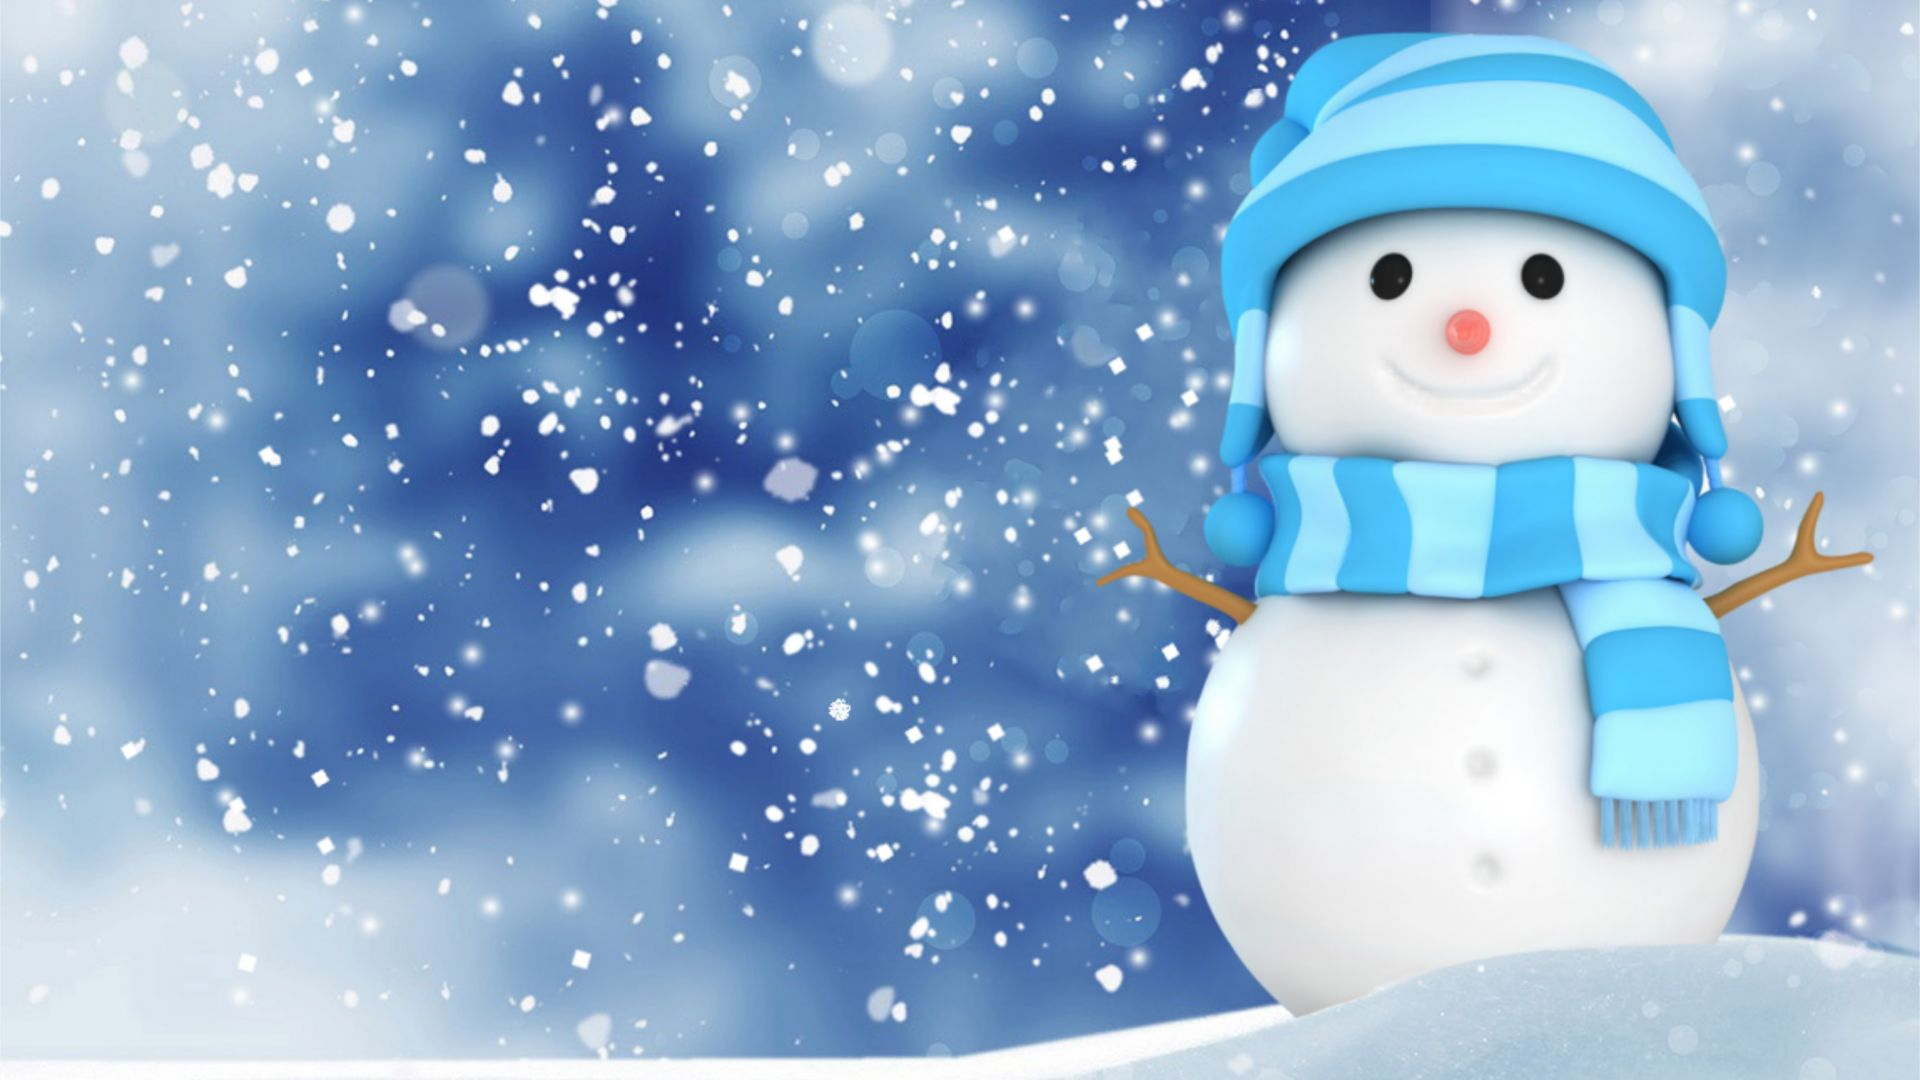 Christmas, New Year, snow, winter, snowman, 4k (horizontal)